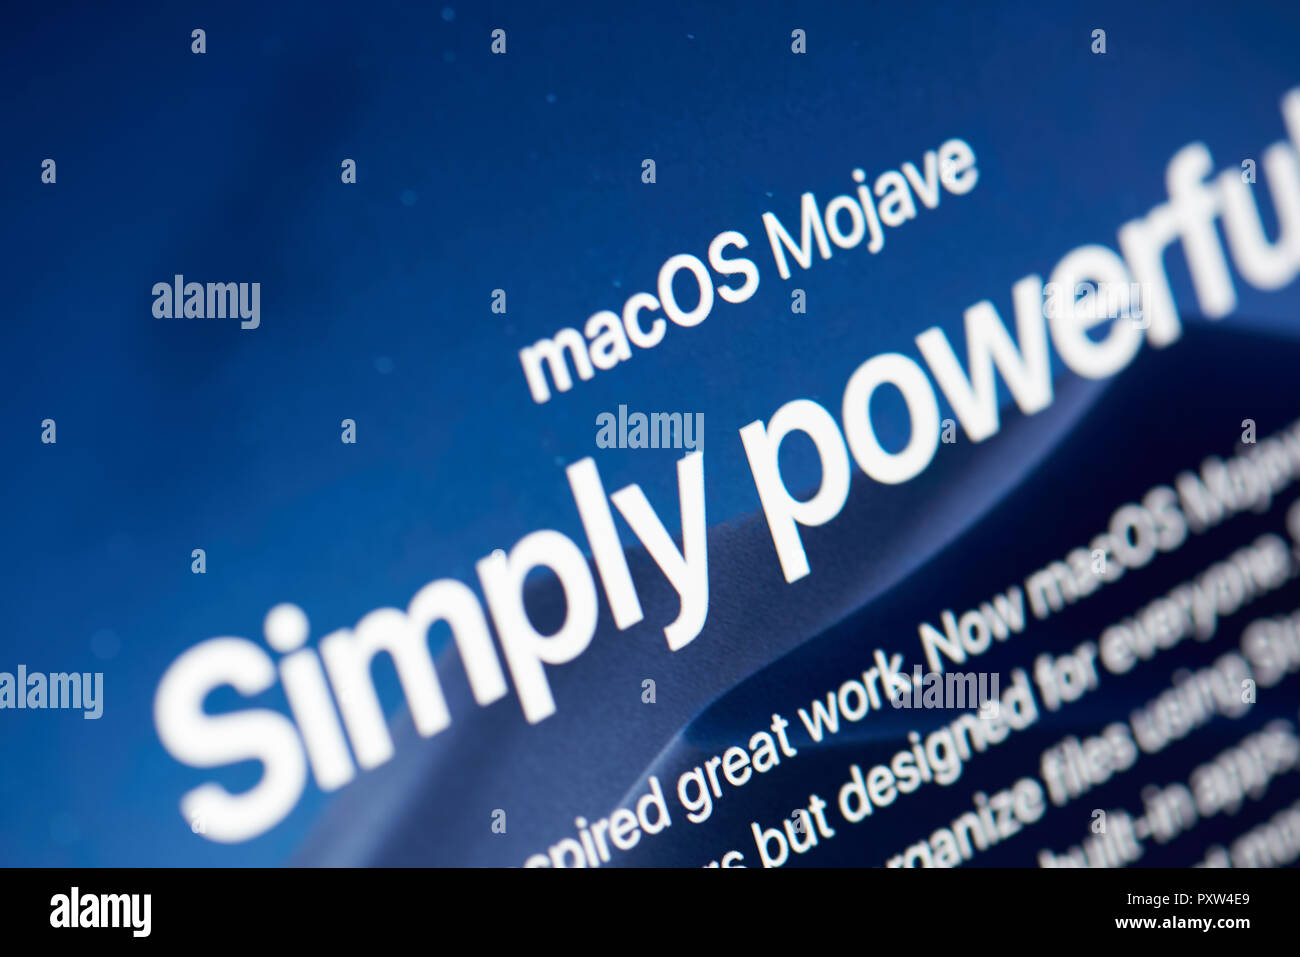 Macos Stock Photos & Macos Stock Images - Alamy